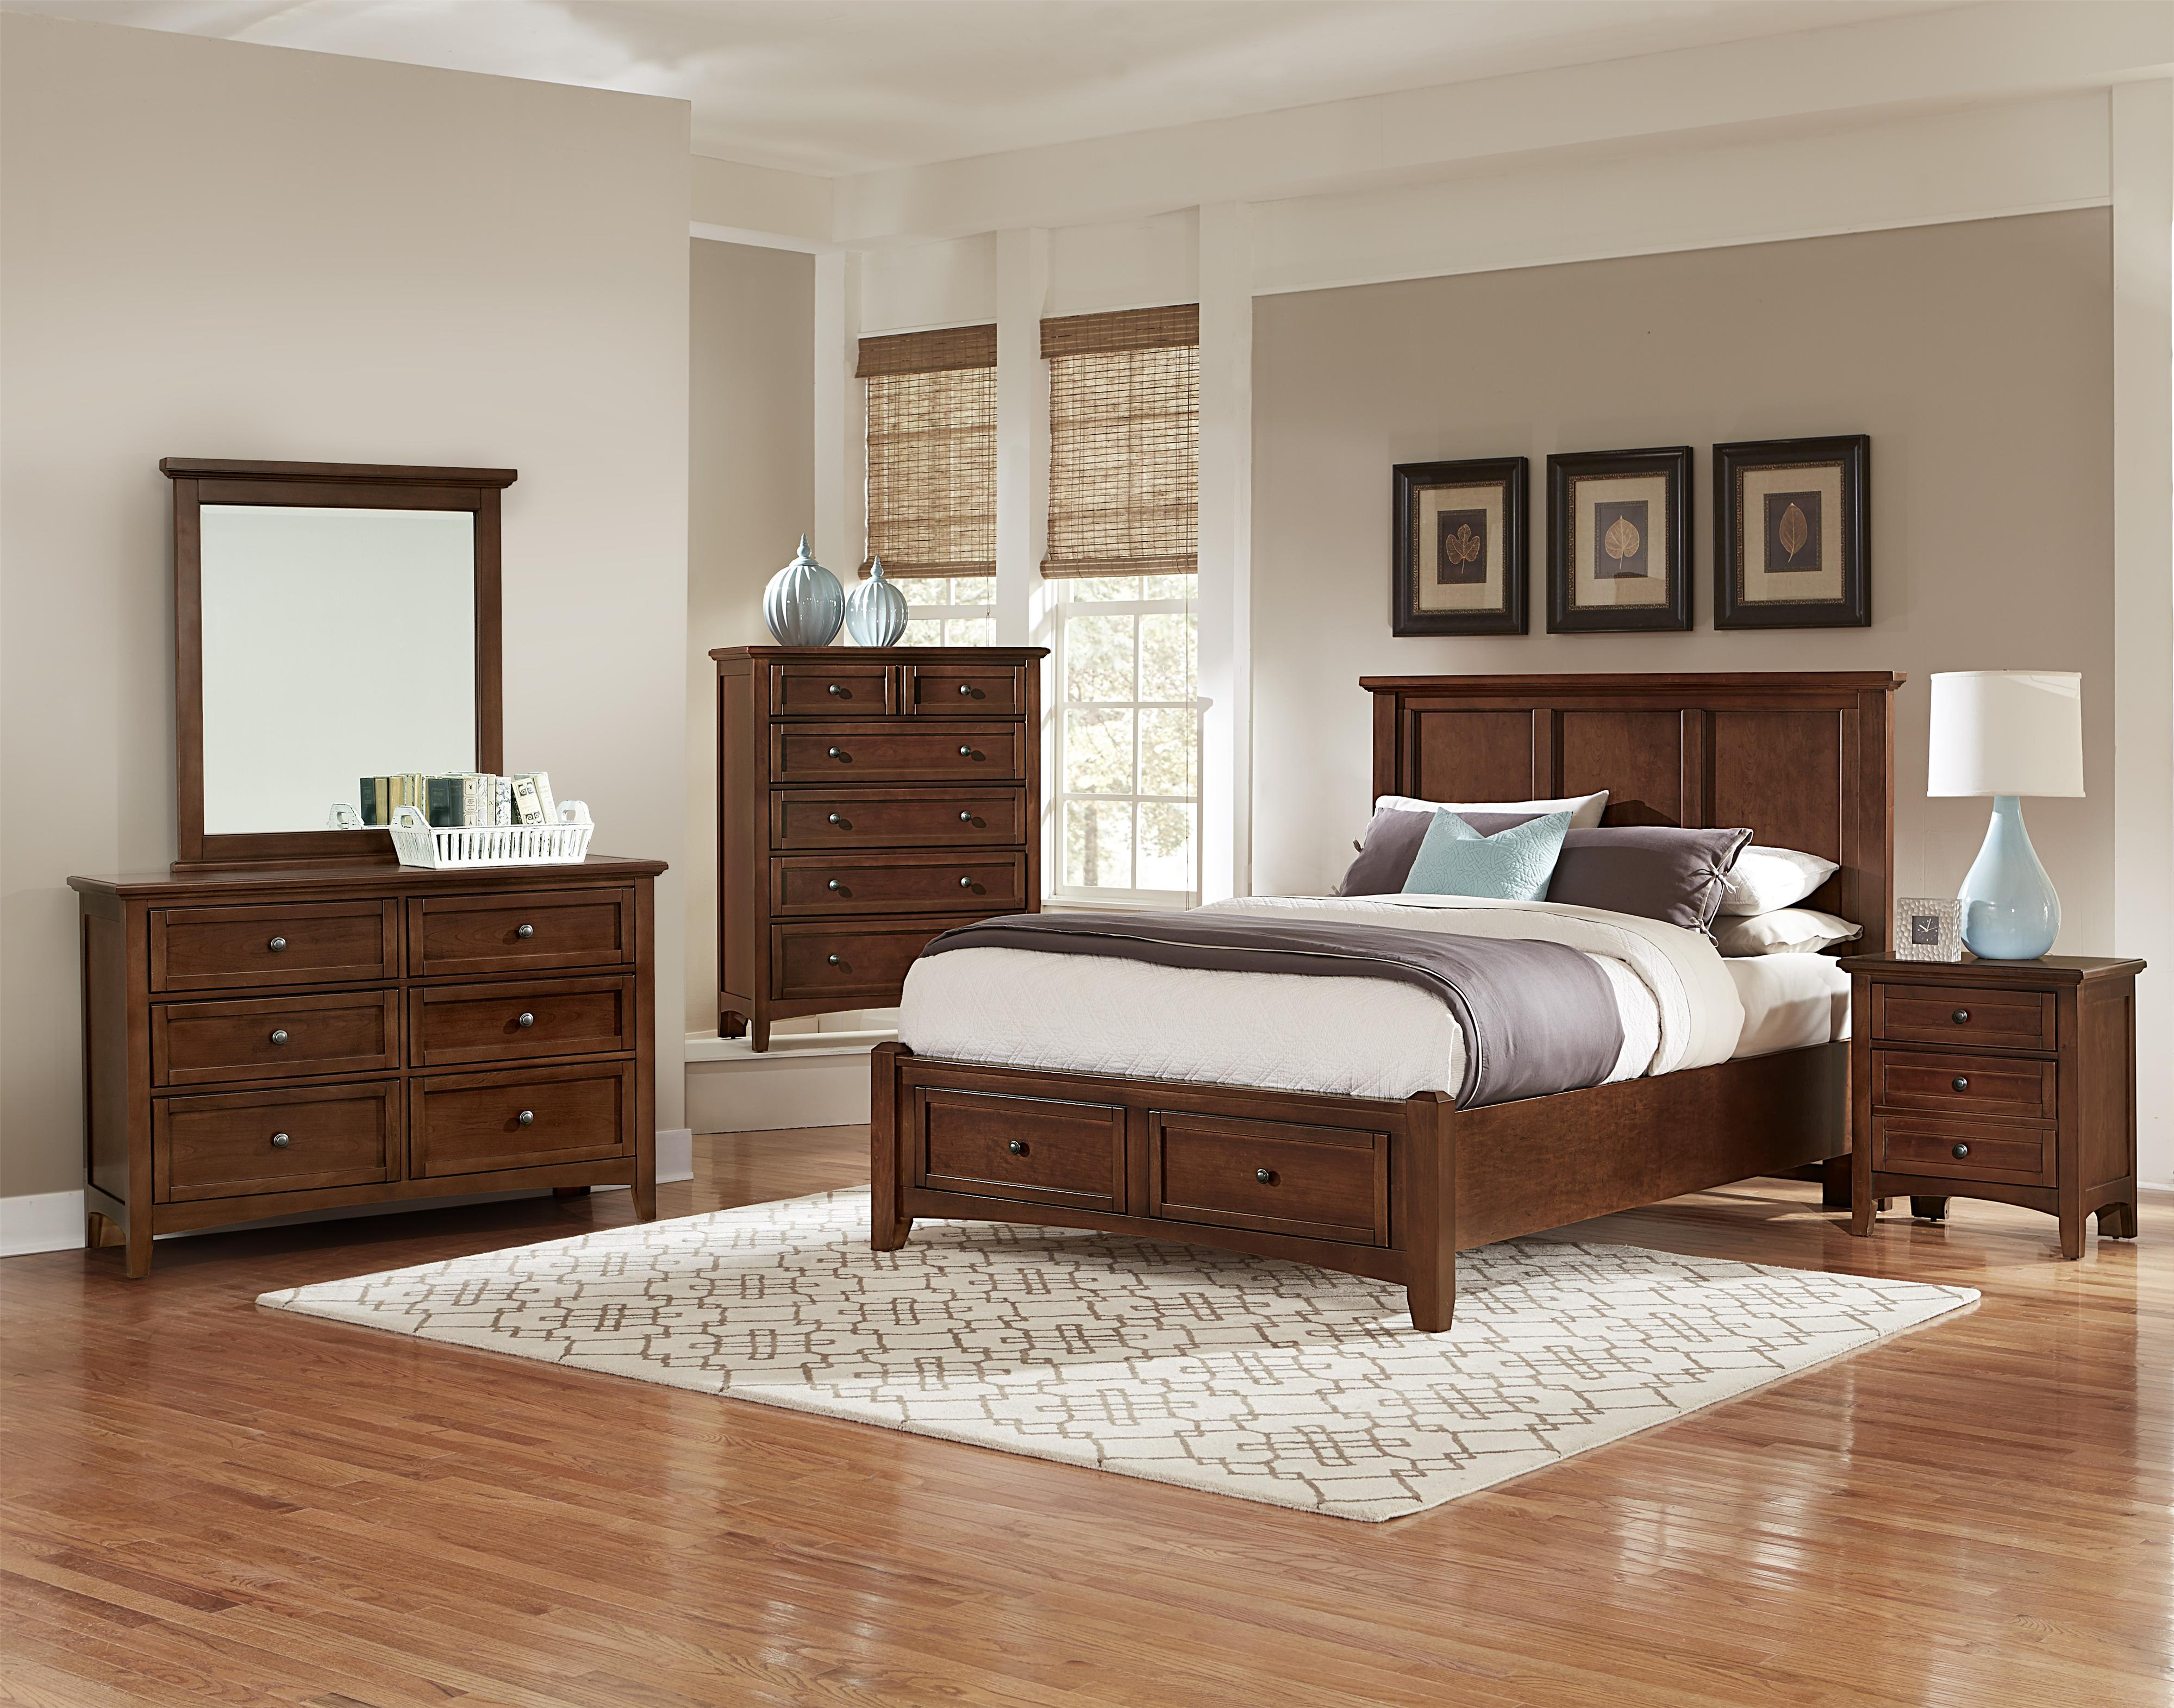 Vaughan bassett bonanza king bedroom group knight for Bedroom furniture groups